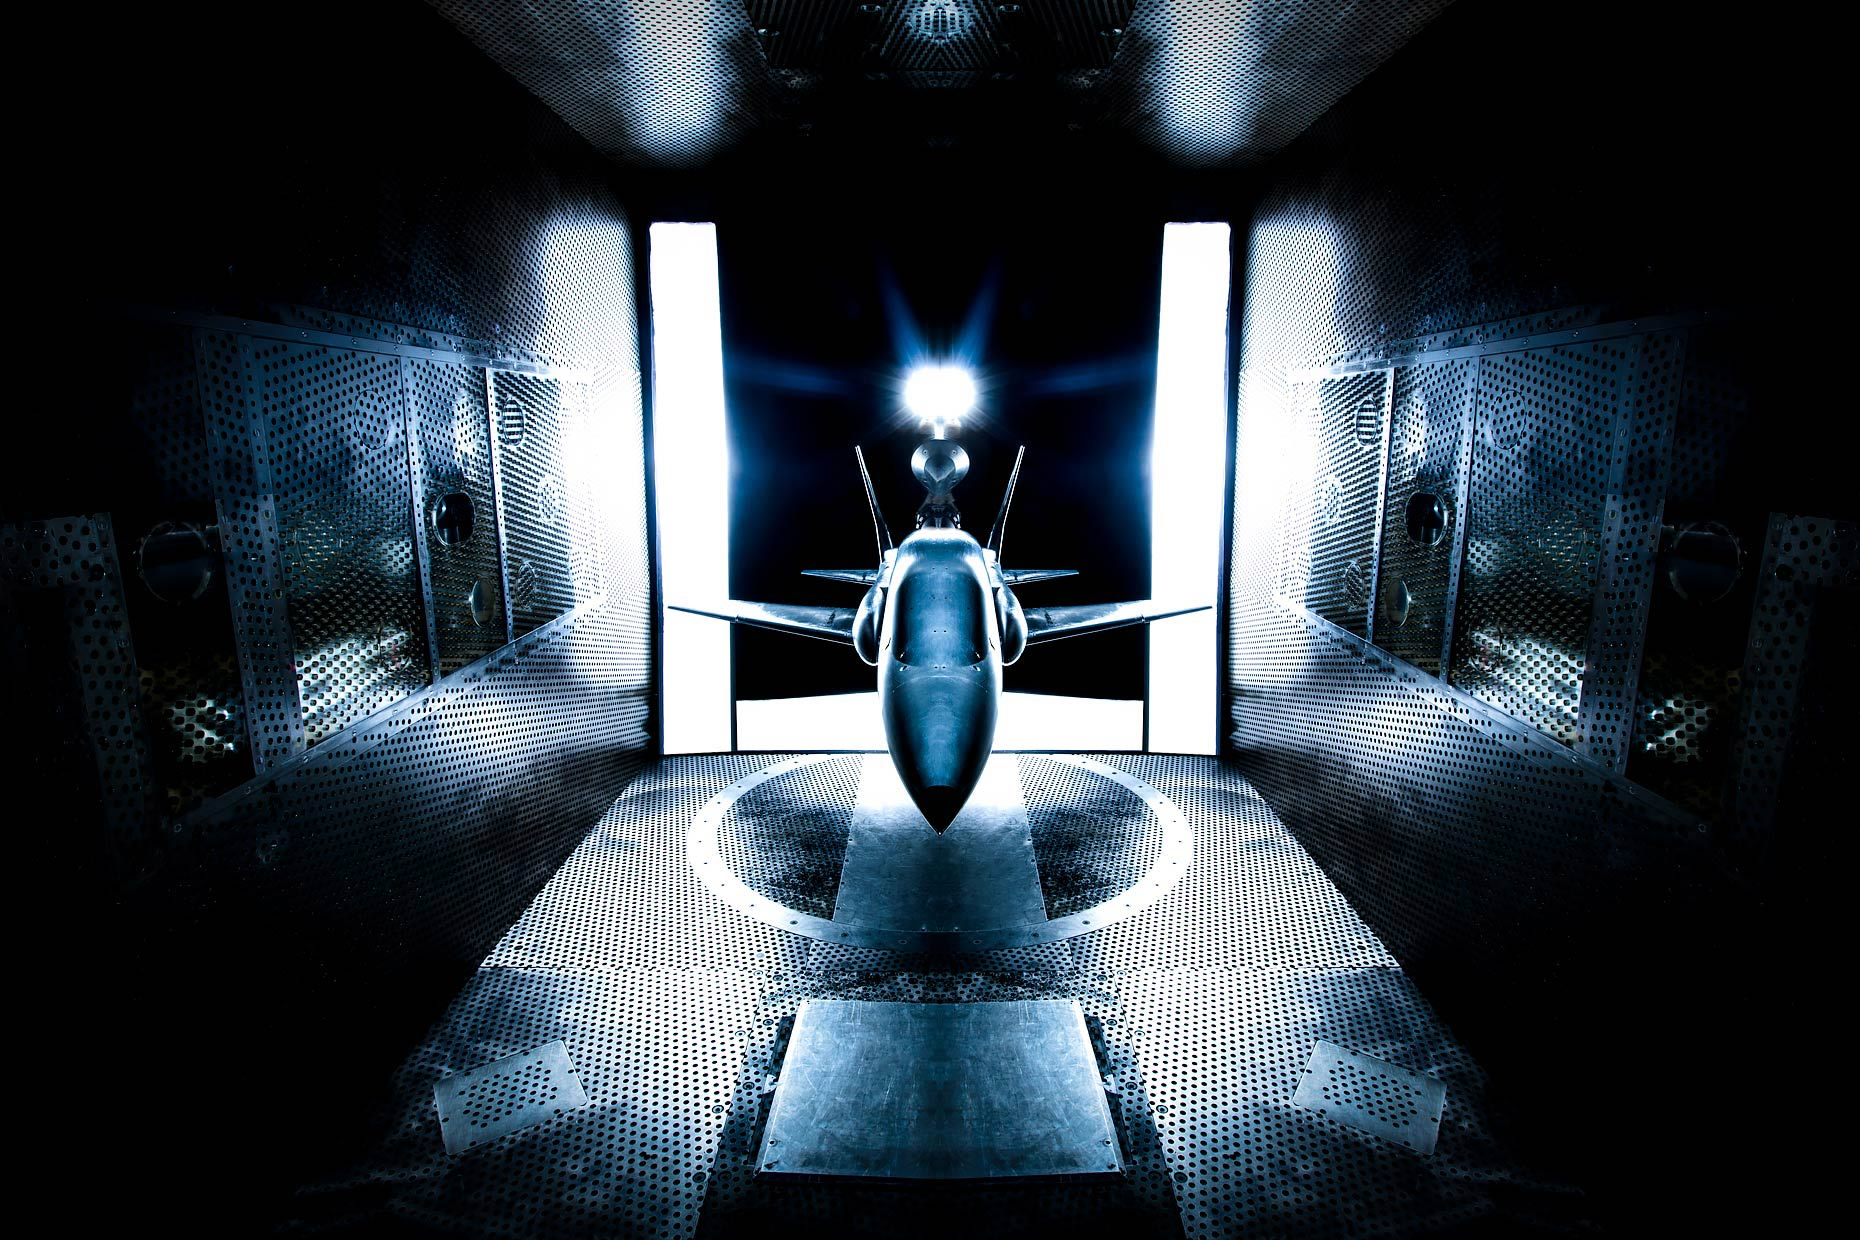 Aircraft model is tested in wind tunnel | Scott Gable industrial photographer